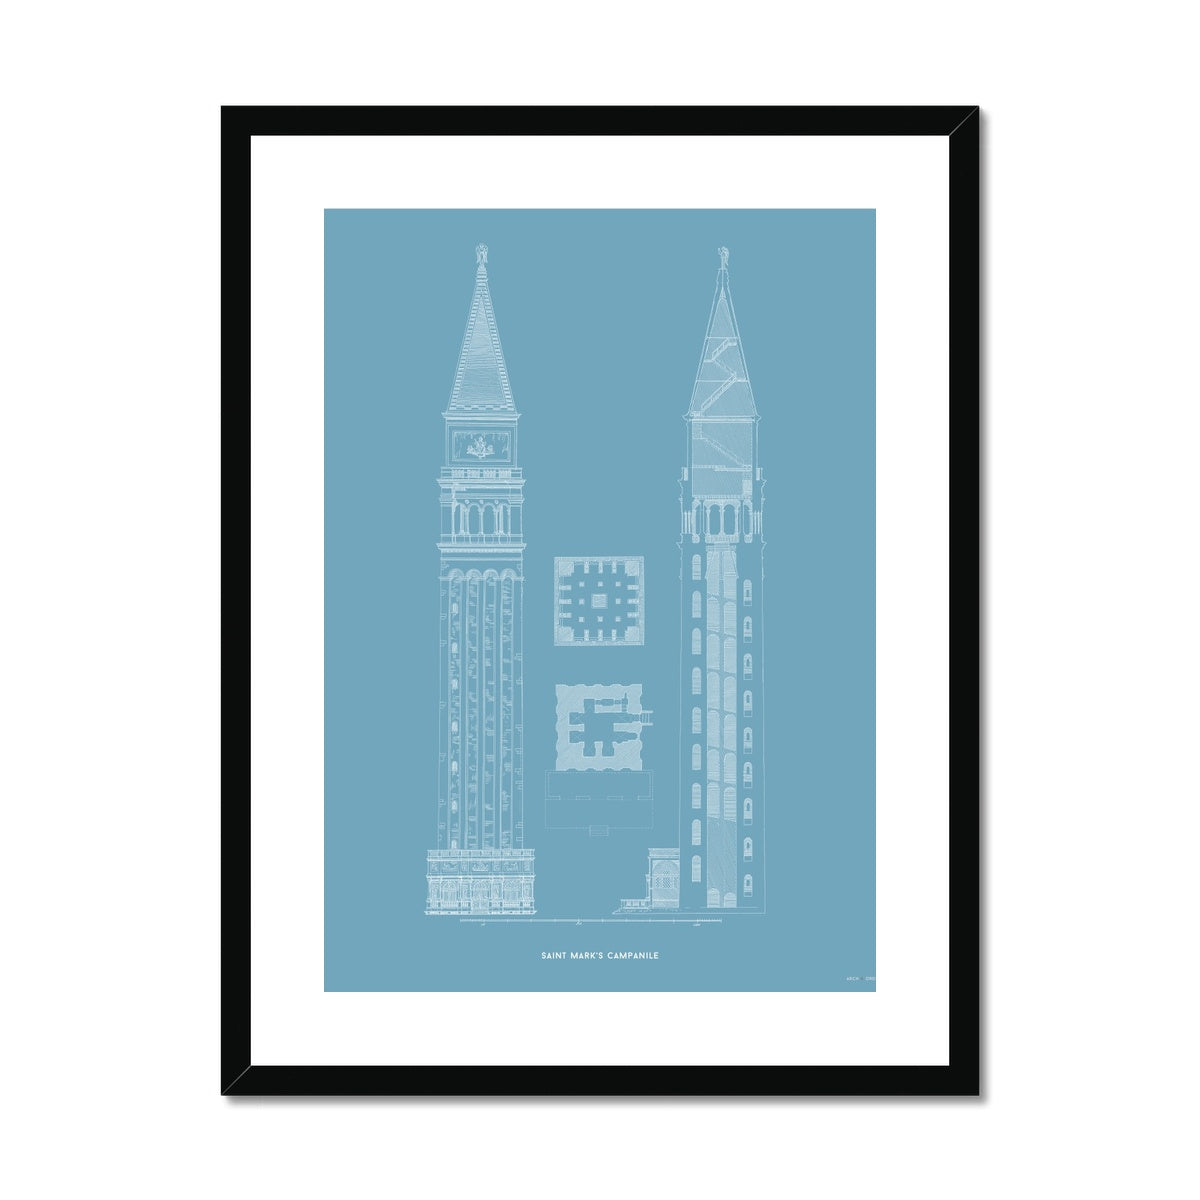 Saint Mark's Campanile - Primary Elevation - Blue -  Framed & Mounted Print